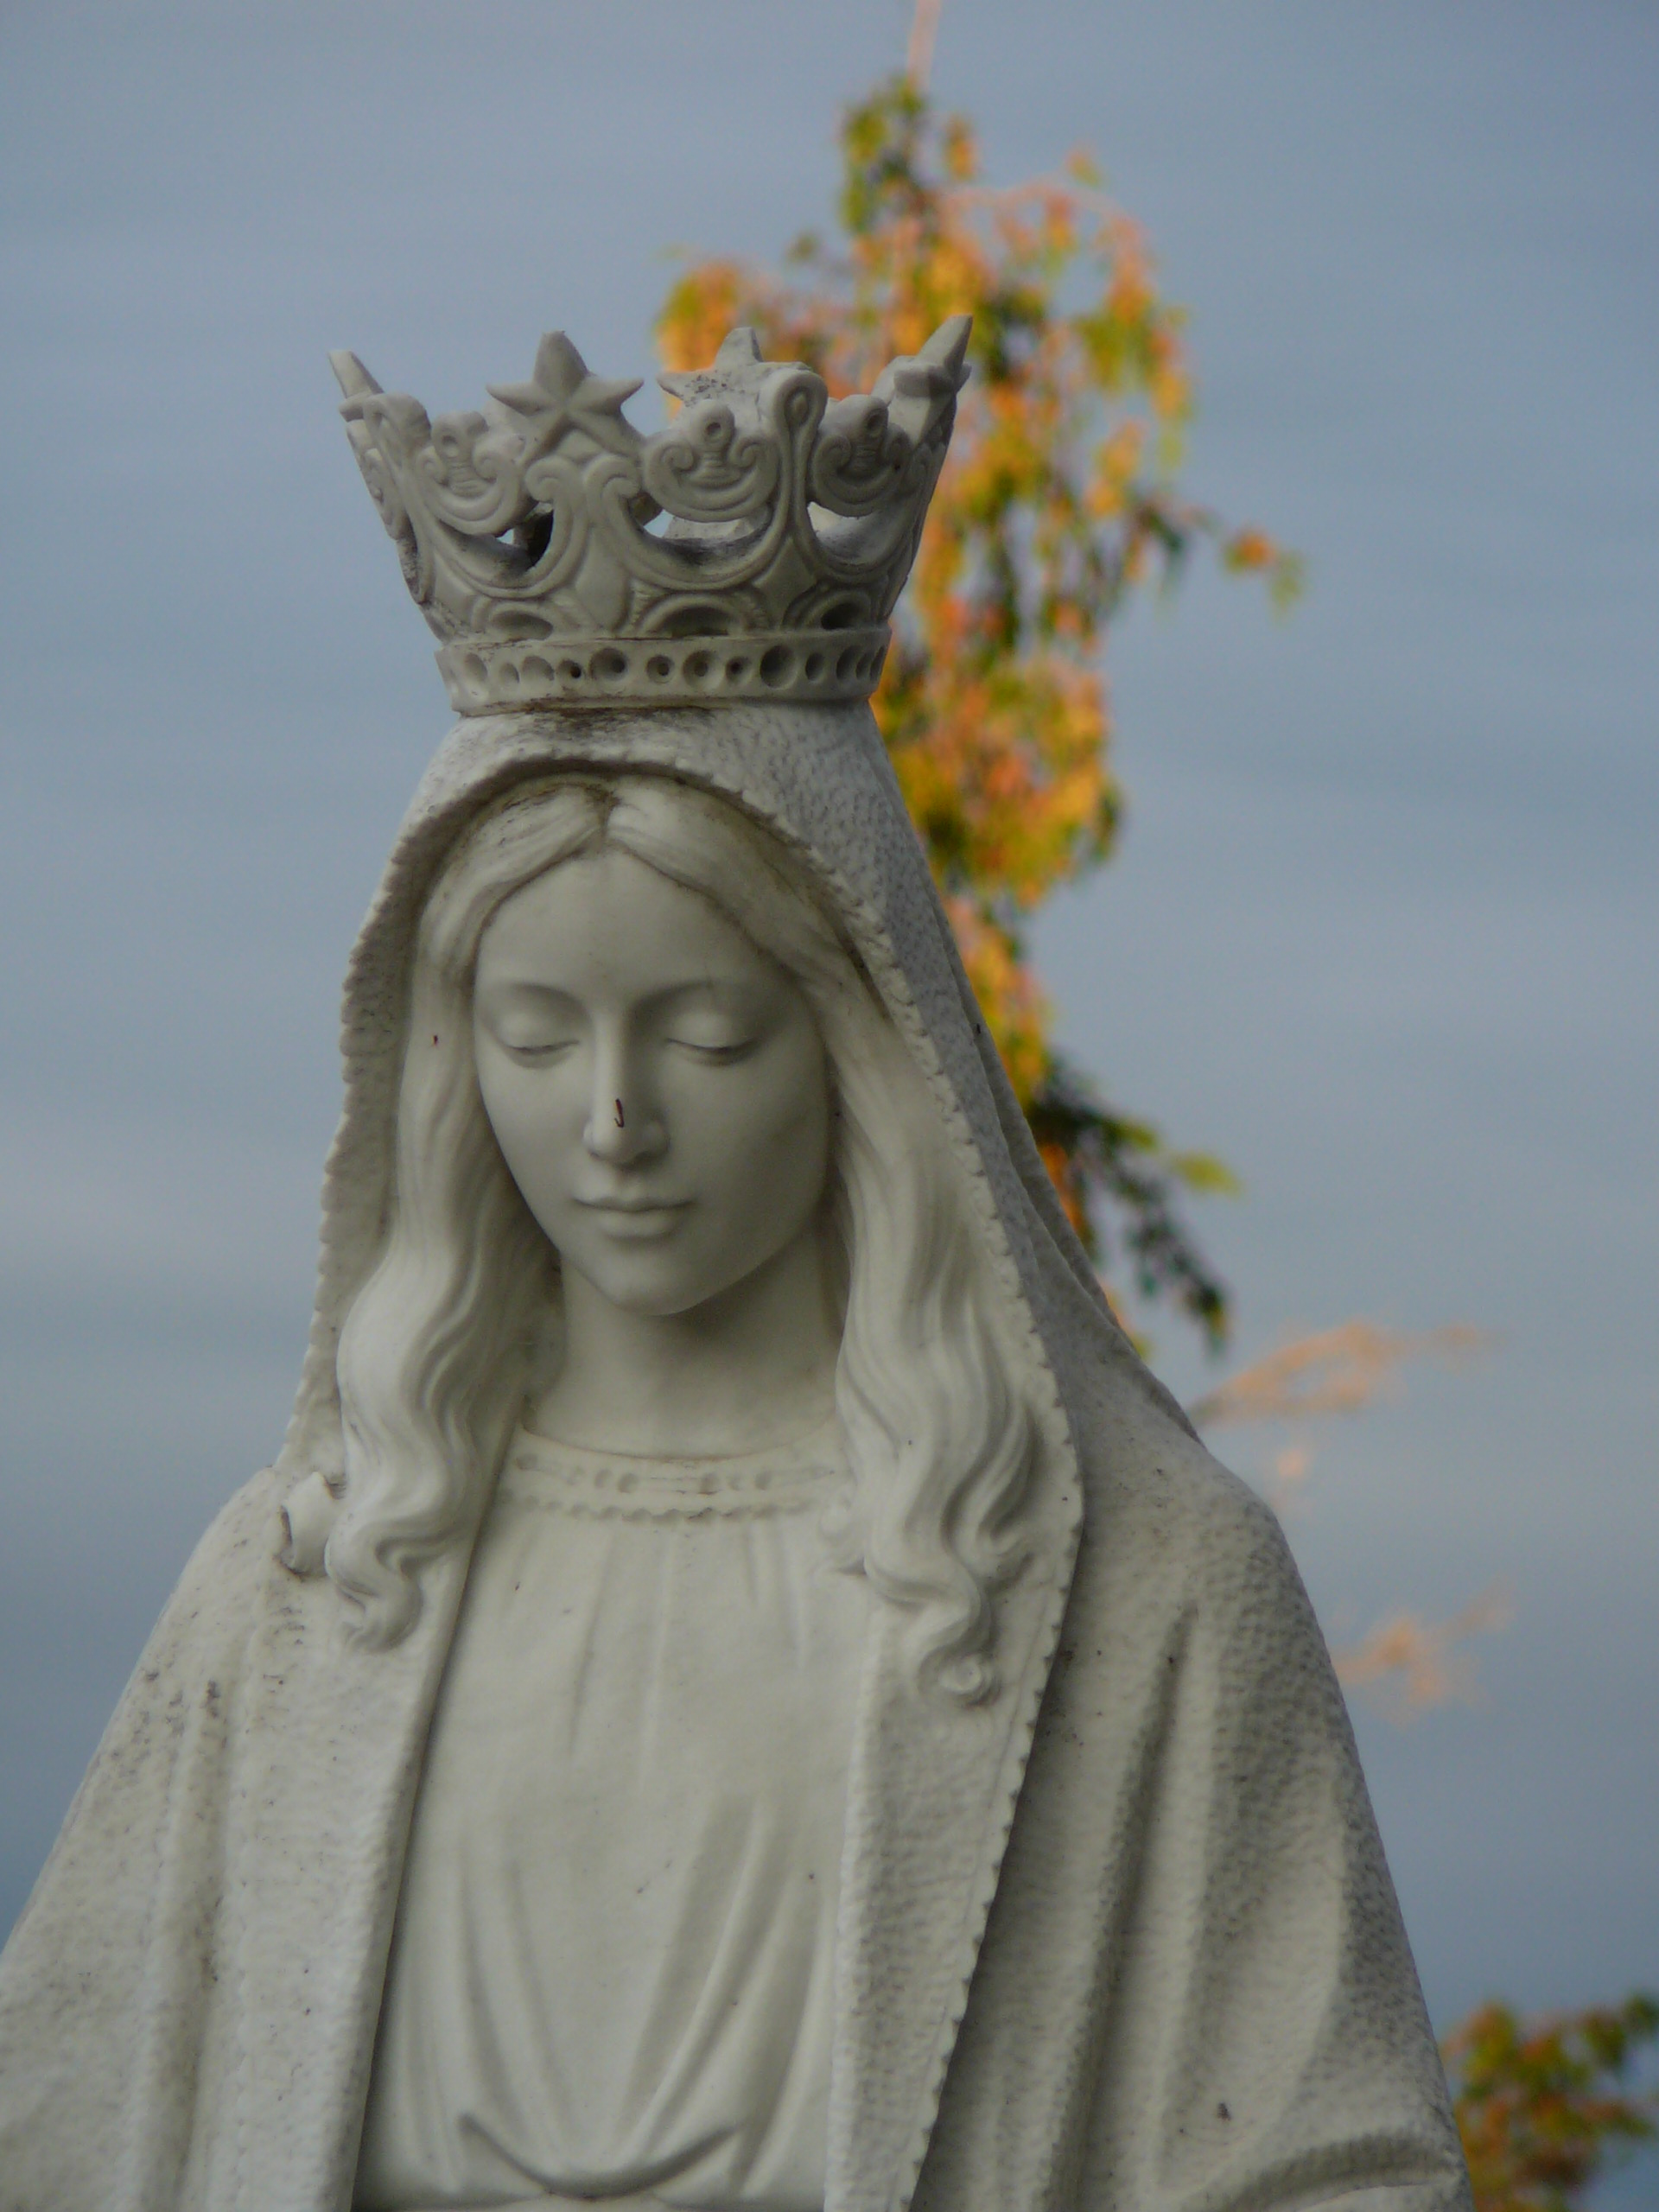 Our Lady Of Fatima Statue Tour Schedule